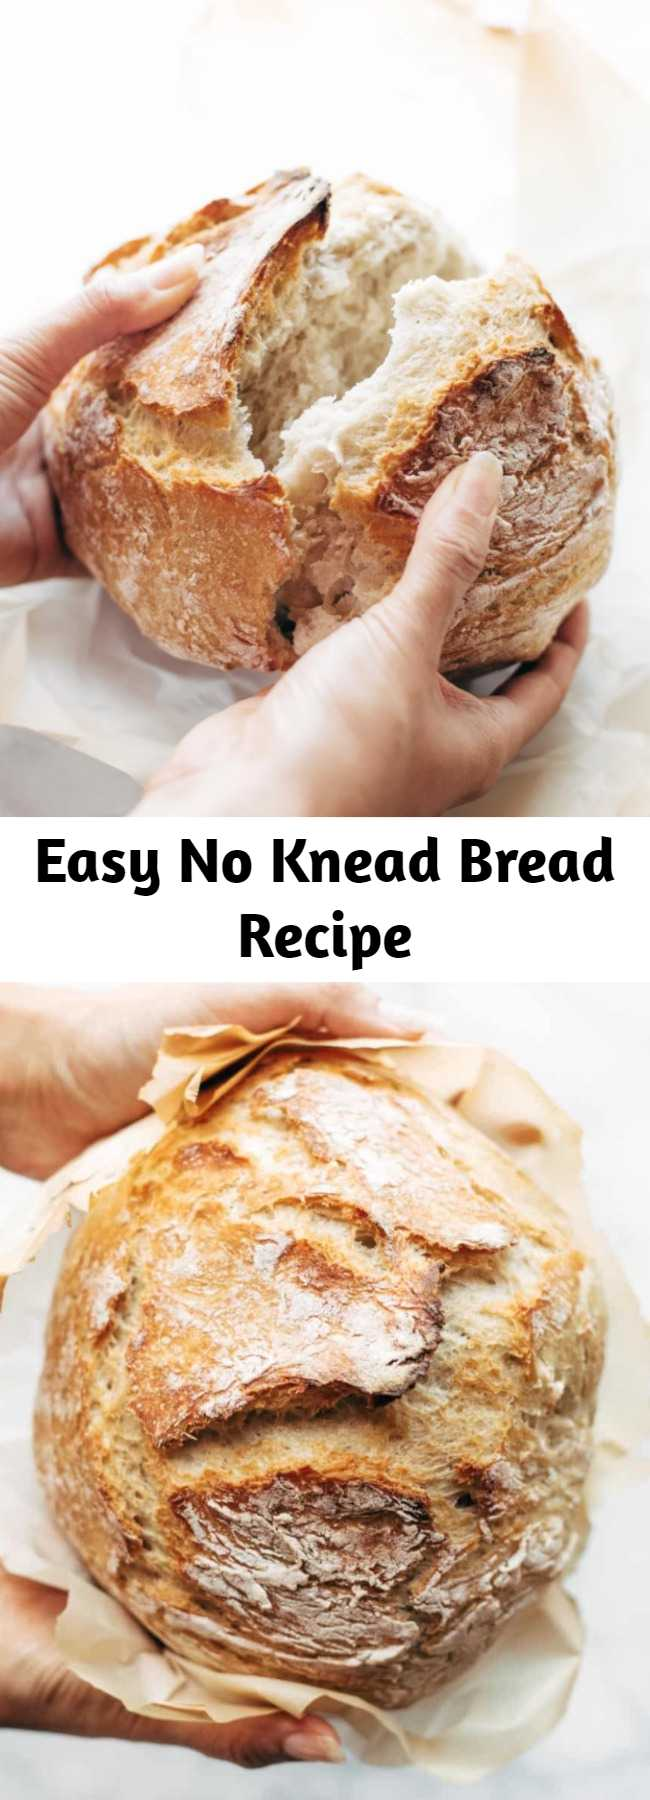 Easy No Knead Bread Recipe - Miracle No Knead Bread! this is SO UNBELIEVABLY GOOD and ridiculously easy to make. crusty outside, soft and chewy inside – perfect for dunking in soups! #bread #easy #recipe #noknead